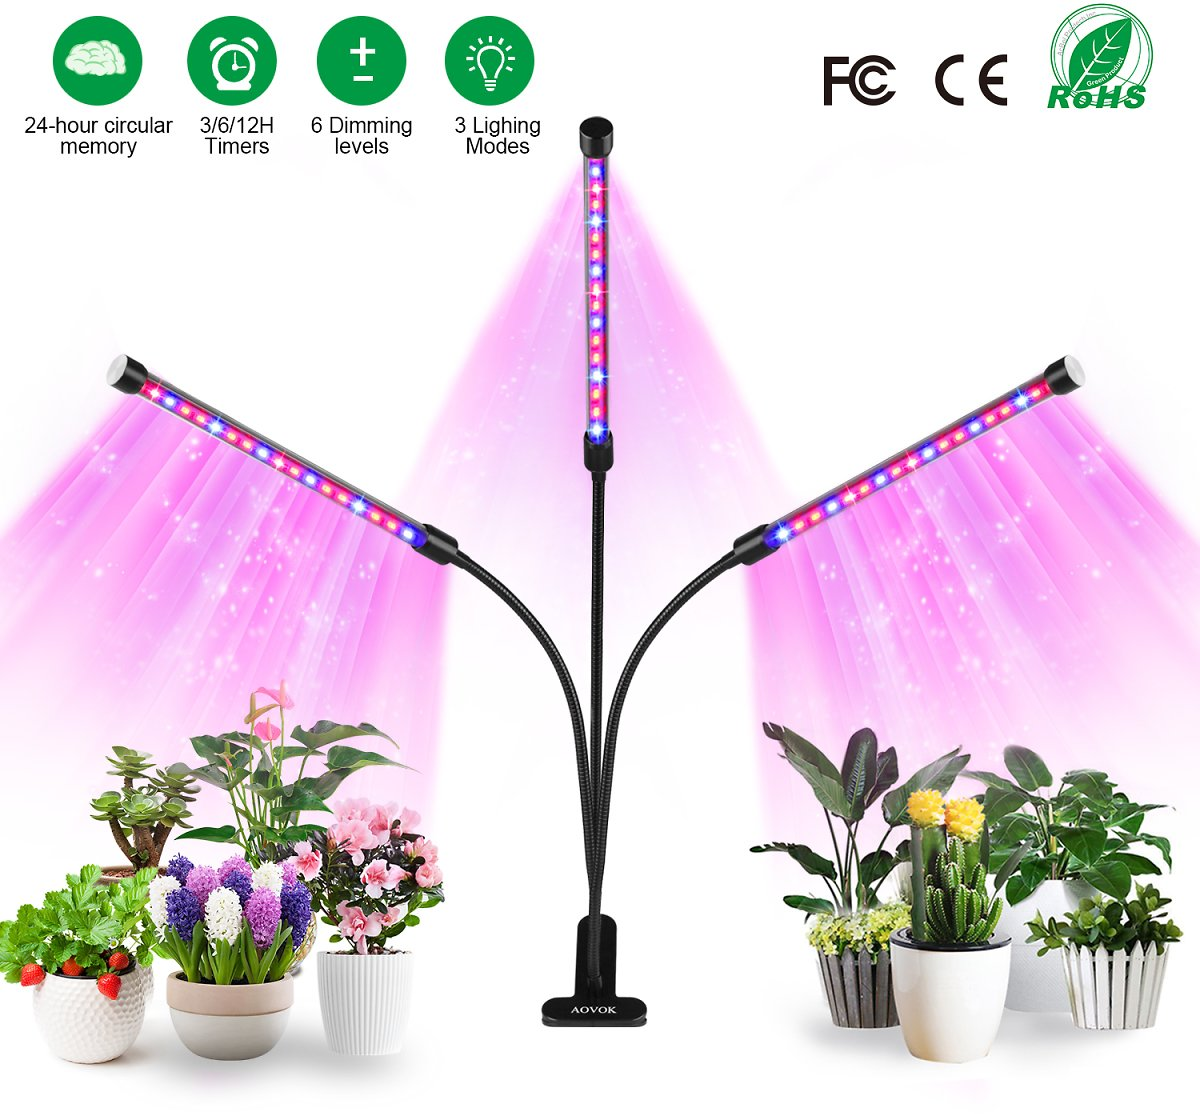 AOVOK LED Grow Light, Grow Lamp Bulb Triple Head Plant Lights with 3/6/12 Timer 6 Dimmable for Indoor Plants, Vegetable, Flowers, Fruits, Succulents, Seedlings Starting : Garden & Outdoor